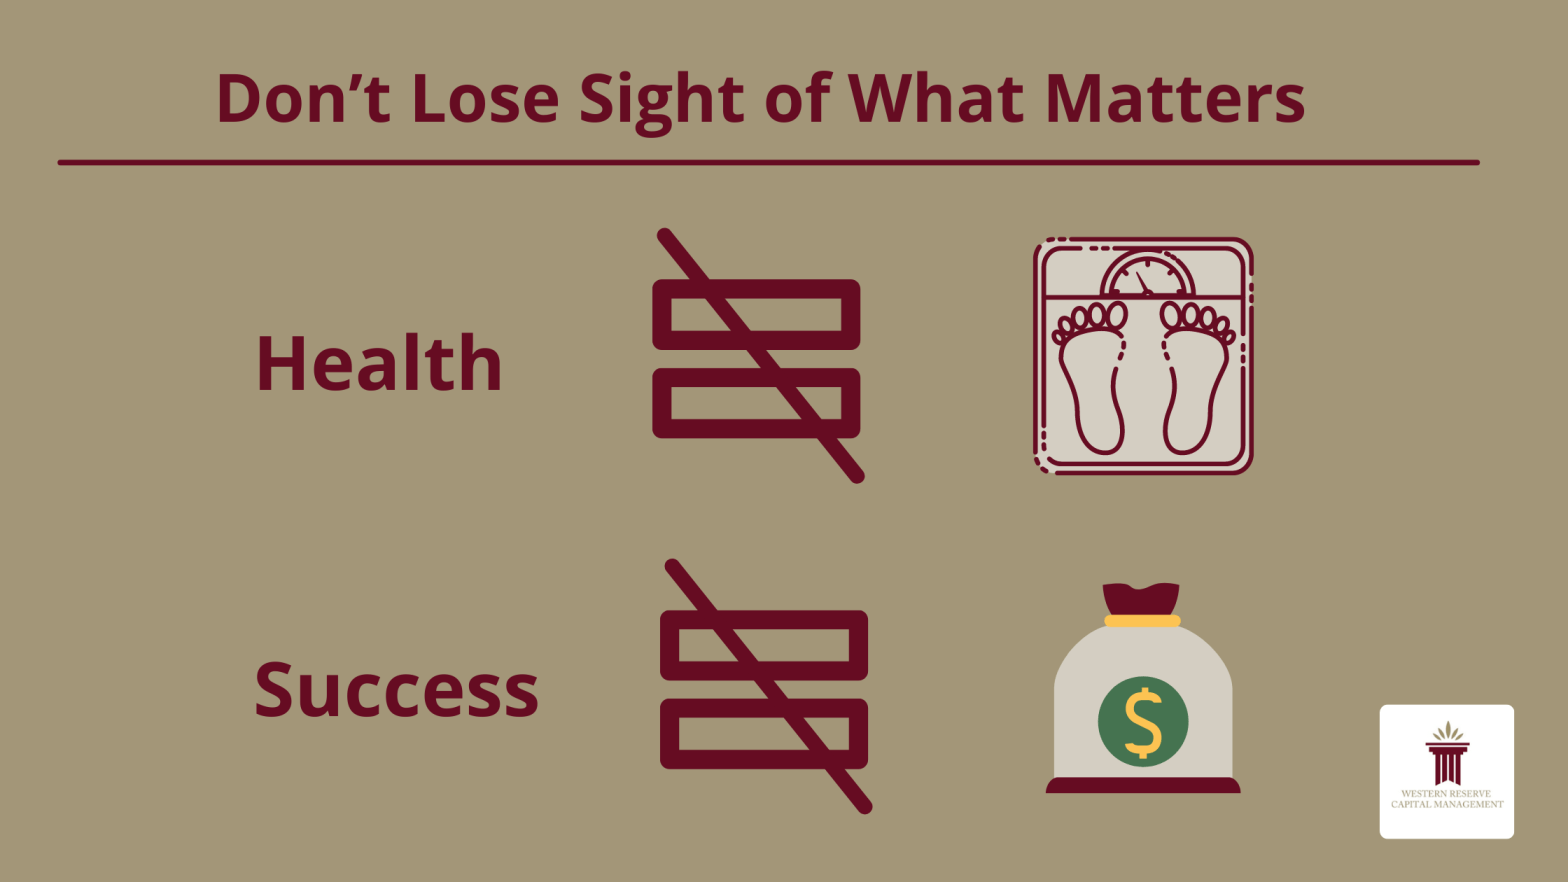 Don't Lose Sight of What Matters